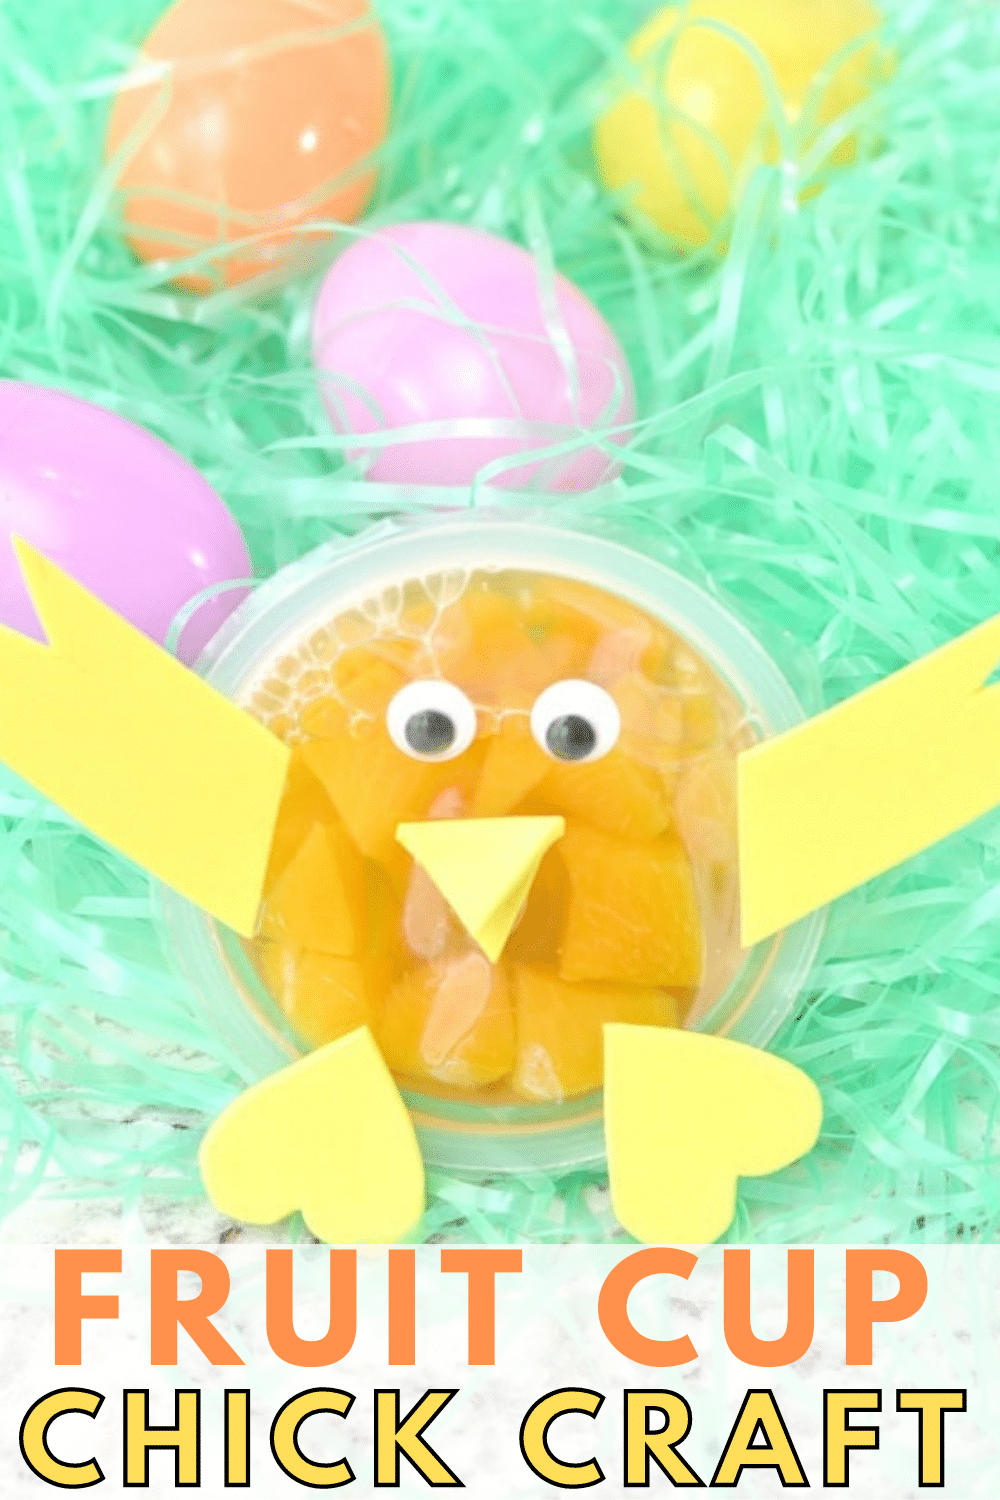 This fruit cup chick craft is so easy and the perfect way to brighten your child's day when you hide it in the lunchbox! #snacks #lunchboxideas #crafts via @wondermomwannab